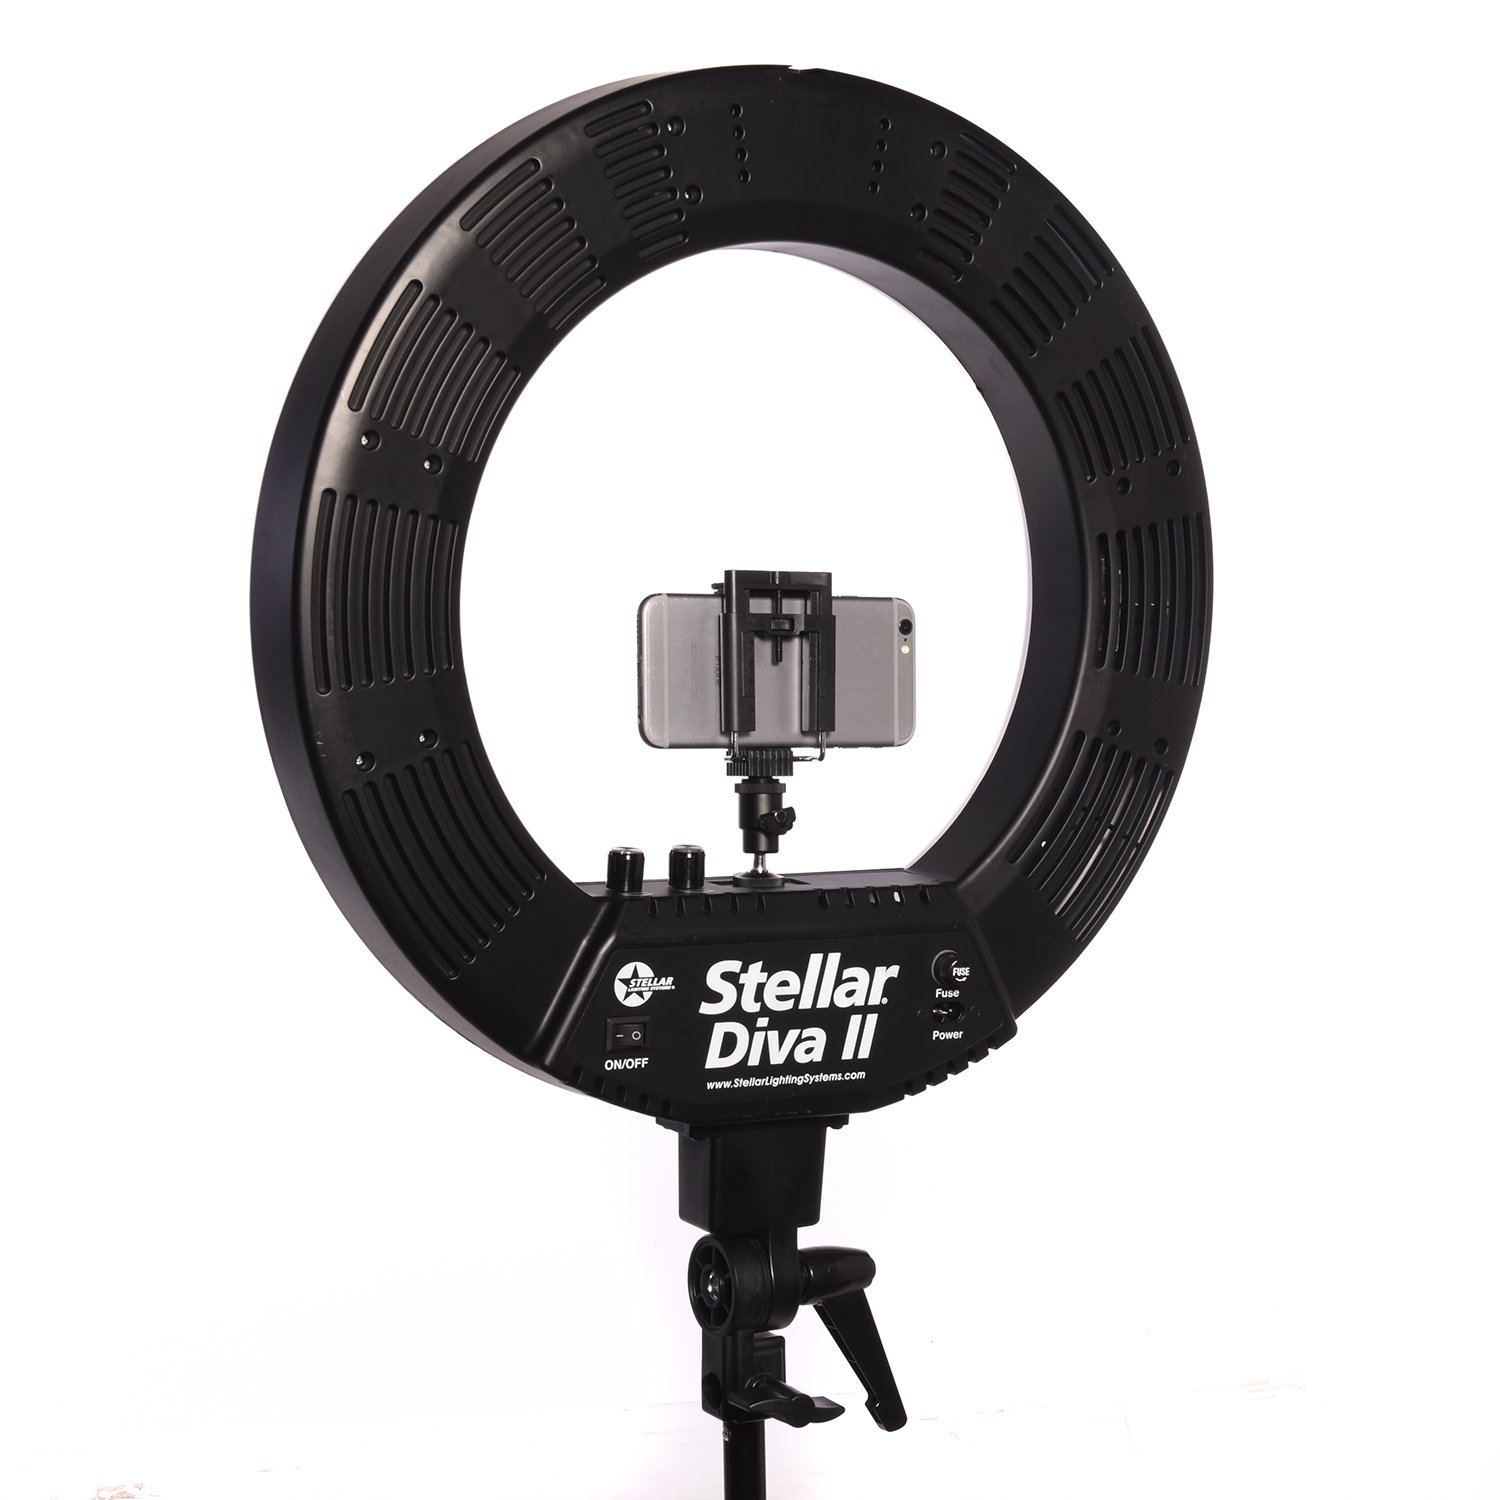 Stellar 18'' LED Diva II Ring Light (Black) w/Wireless Bluetooth Camera Shutter Remote Control for IOS & Android Phones and Universal Smartphone Tripod Mount & Adapter For Most Smartphones by Calumet (Image #4)